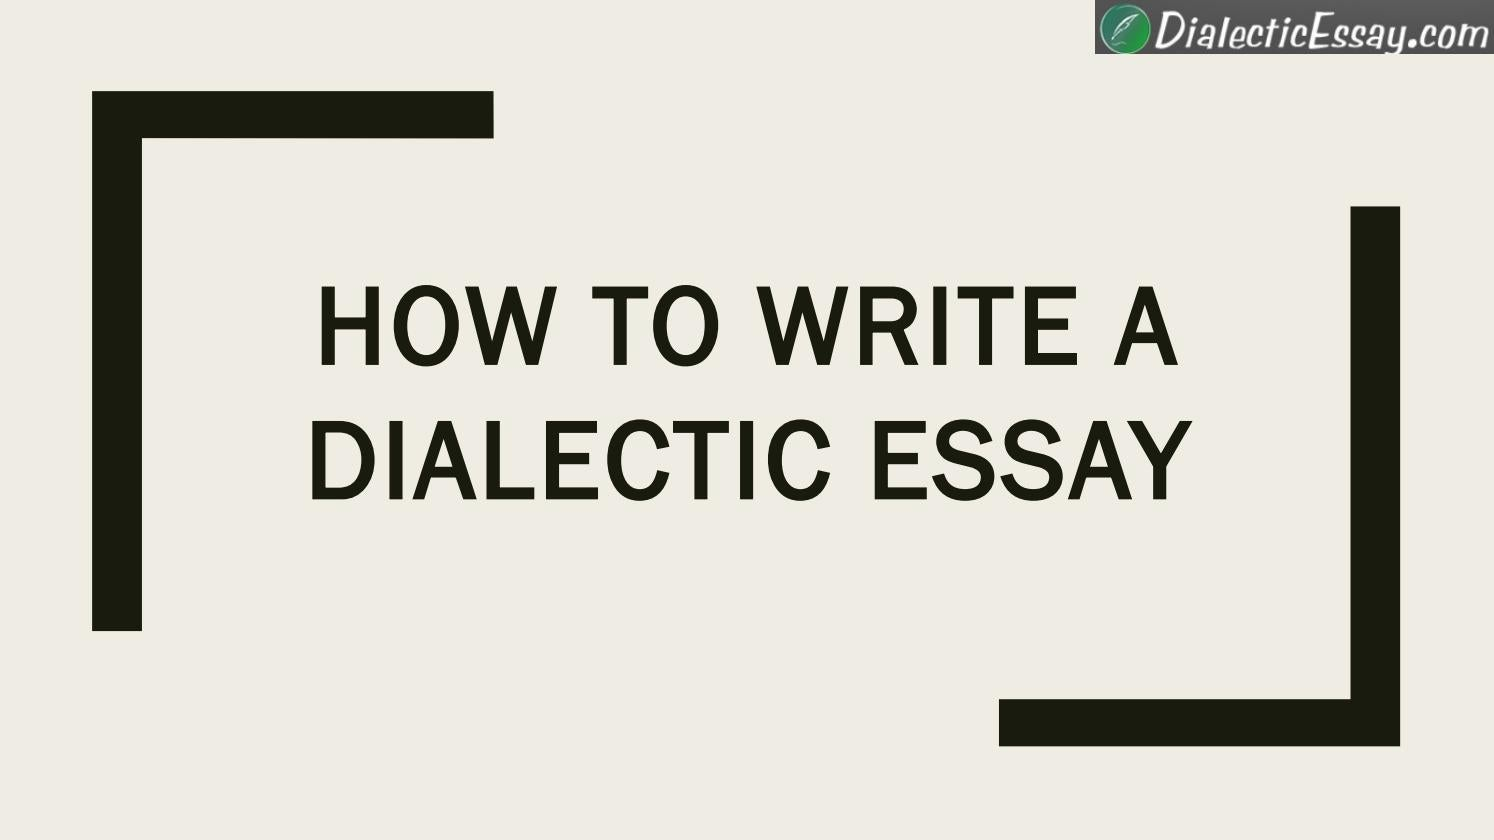 how to write a dialectic essay by dialectic essay issuu